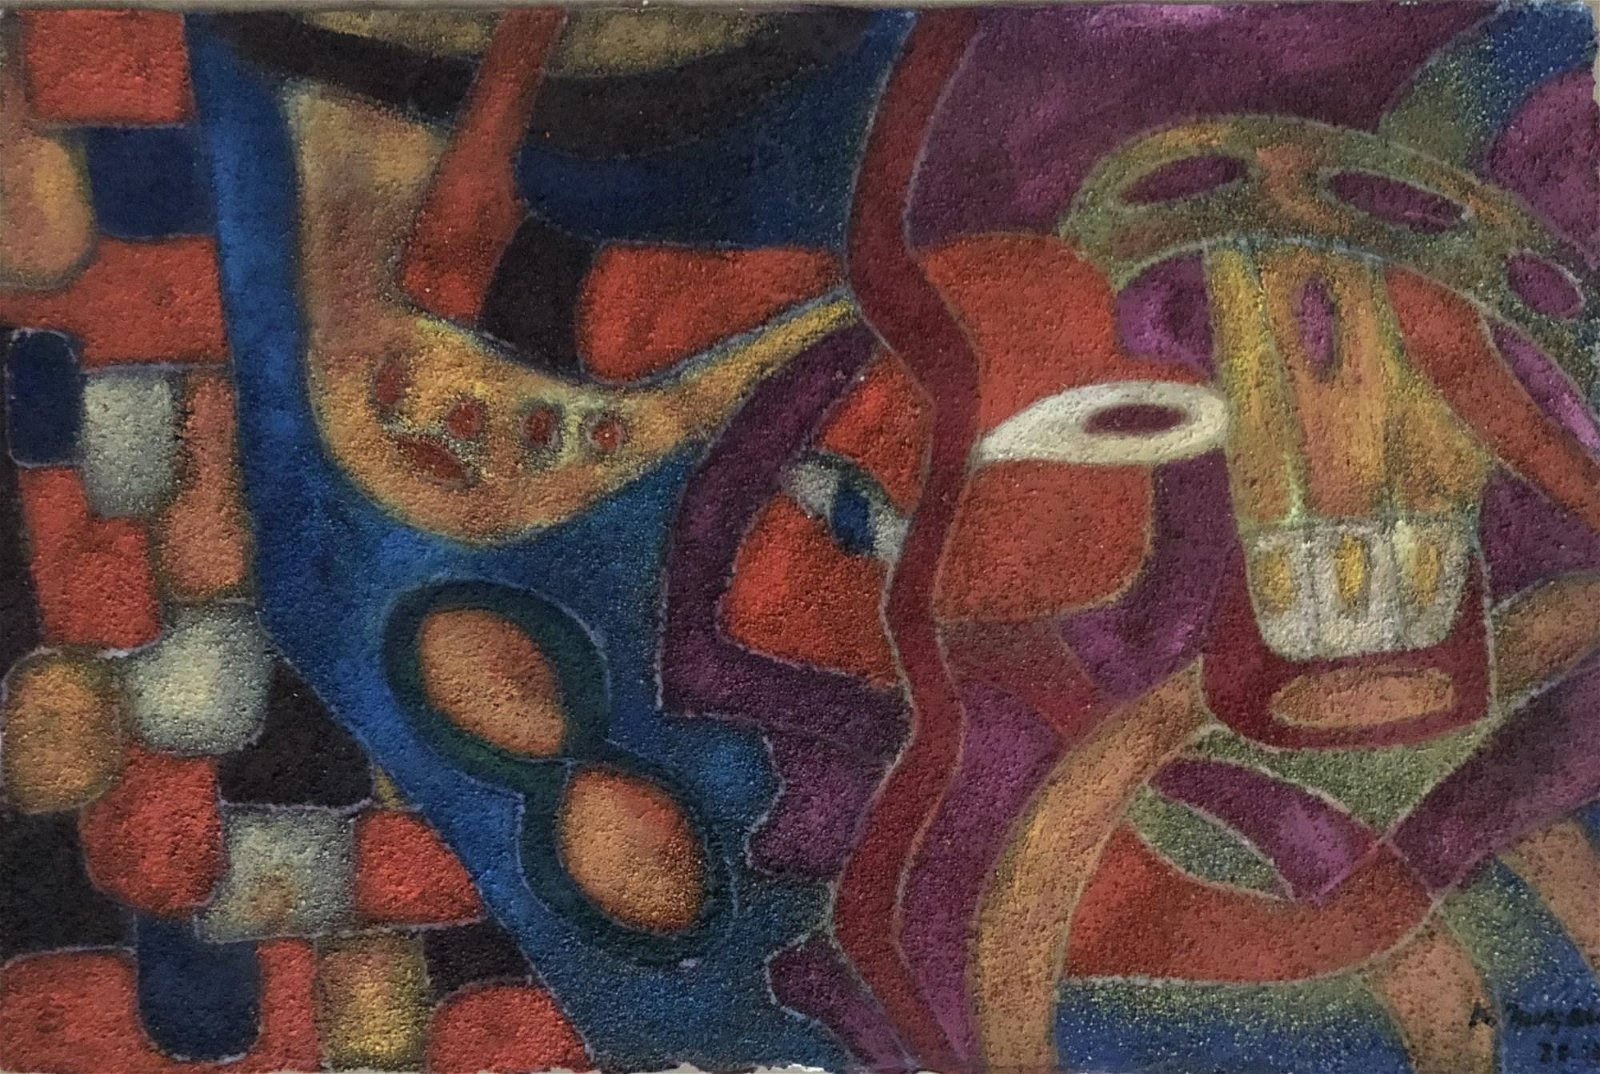 KARIMA MUYAES - Travelers - Oil and pigments on paper